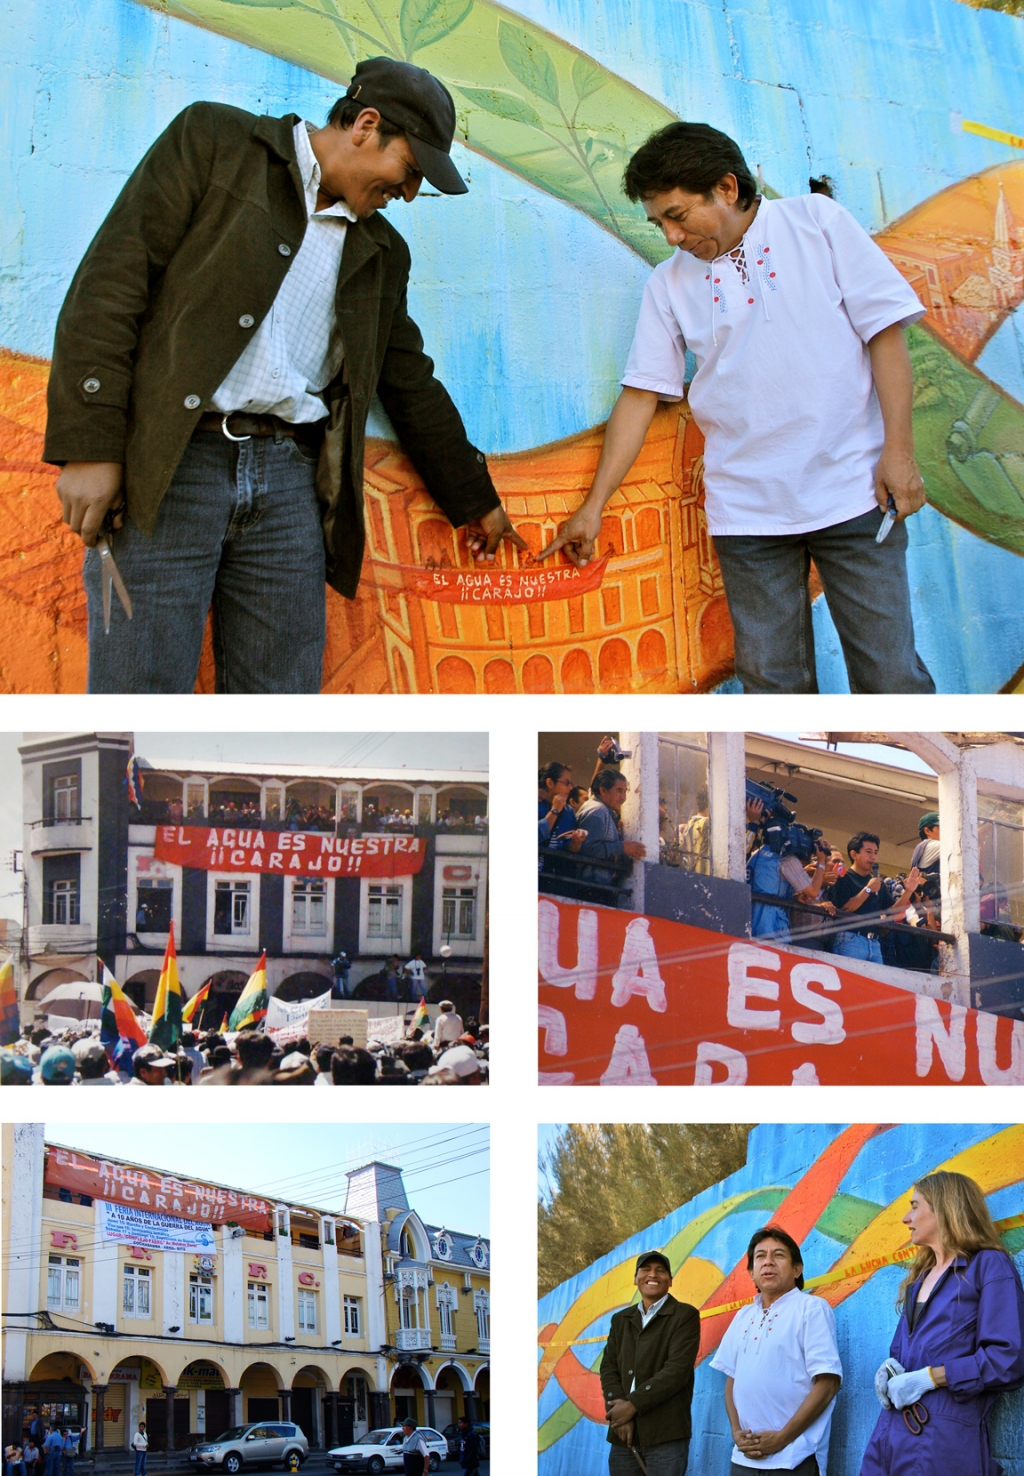 <strong>Top</strong>: Oscar Olivera (right) and Abraham Grandydier of Asica-sur, find themselves in the mural.</p><div><strong>Middle</strong>: Thebalcony of the Federation of factory workers, and Oscar speaking to the crowd in April 2000.<br /><strong>Bottom</strong>: The same balcony with the banner brought back for the anniversary, Oscar and Abraham in 2010.